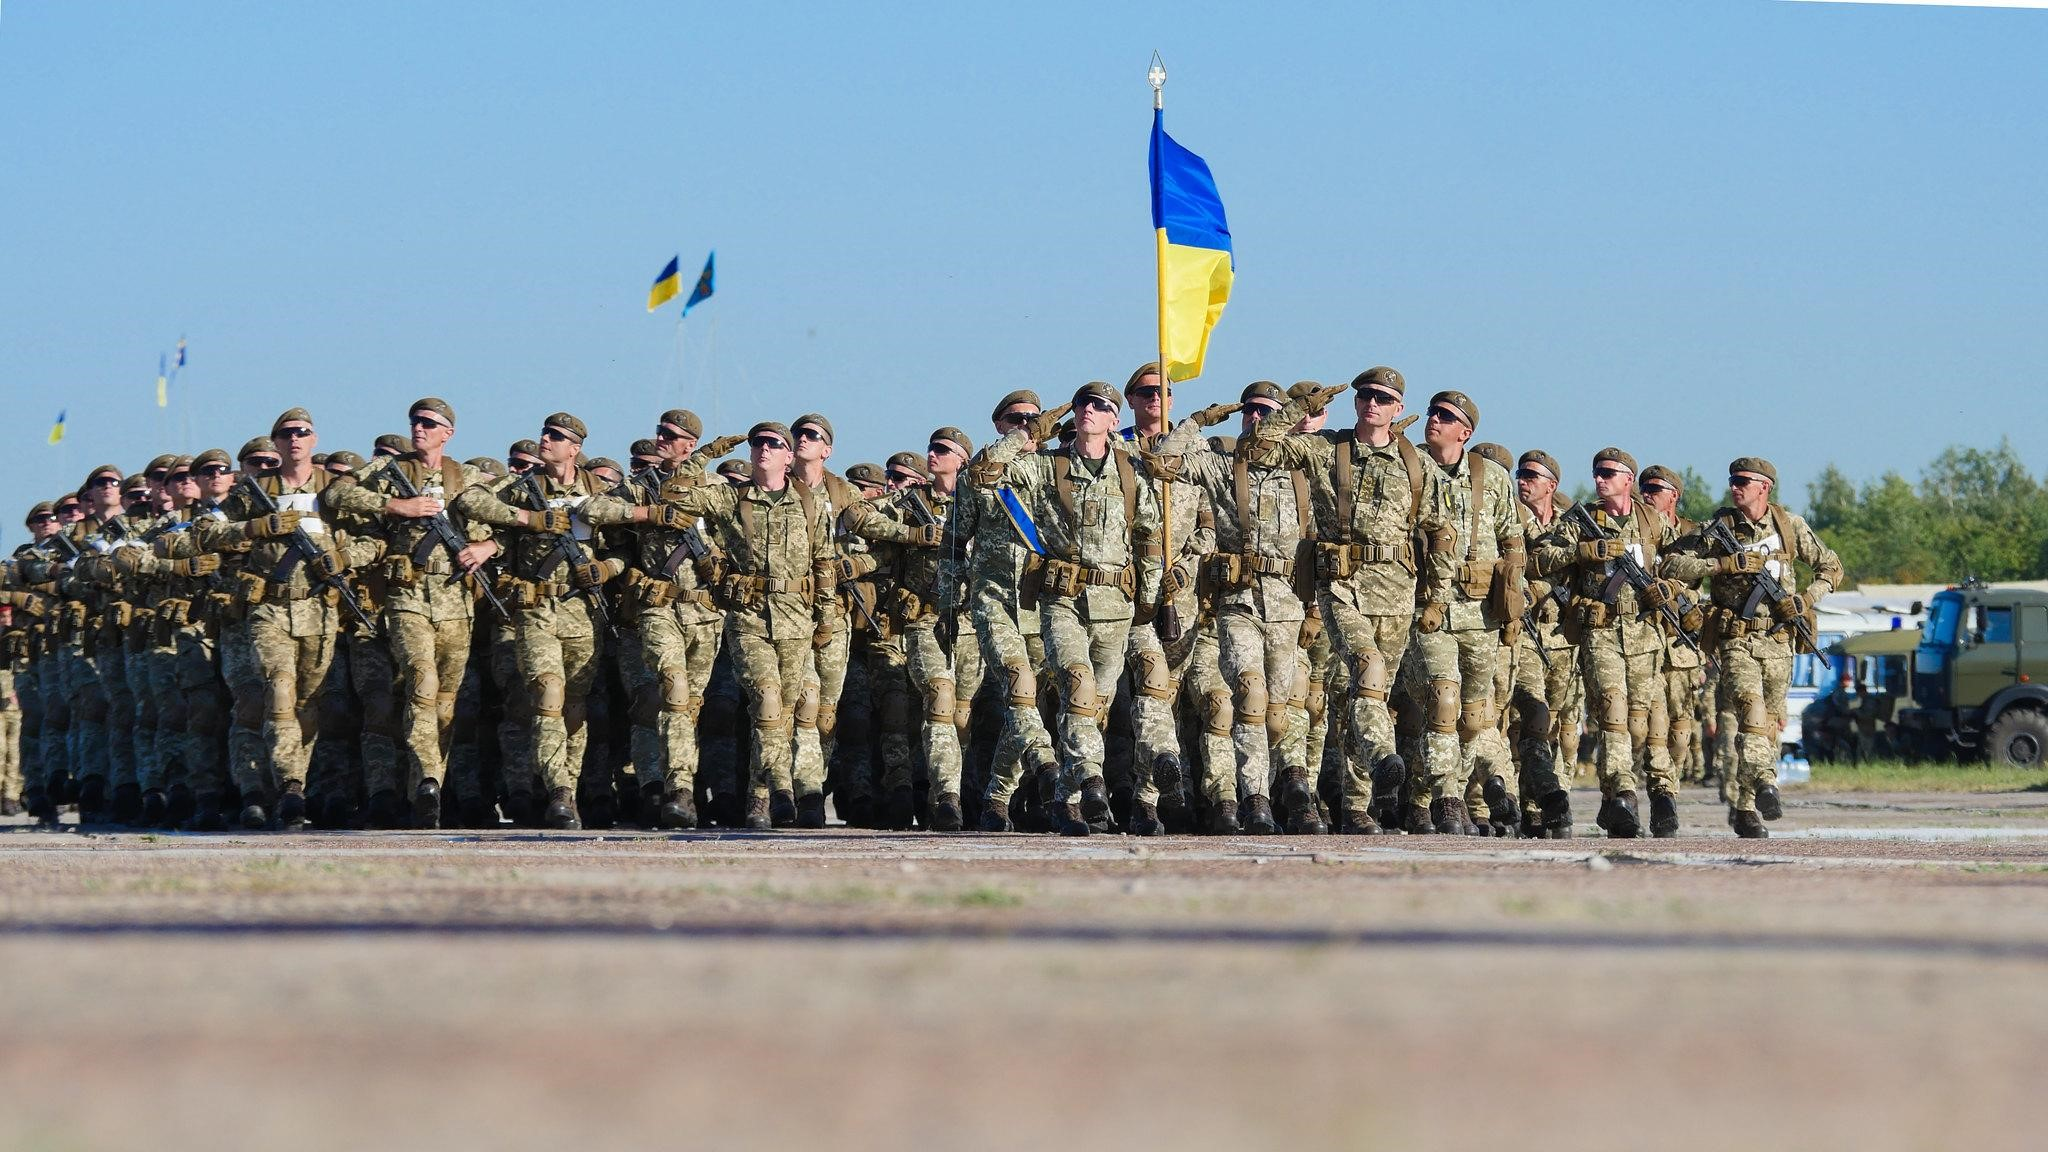 Ukraine's Defence Sector: Despite Record-Breaking Budget, Major Reforms Still Needed